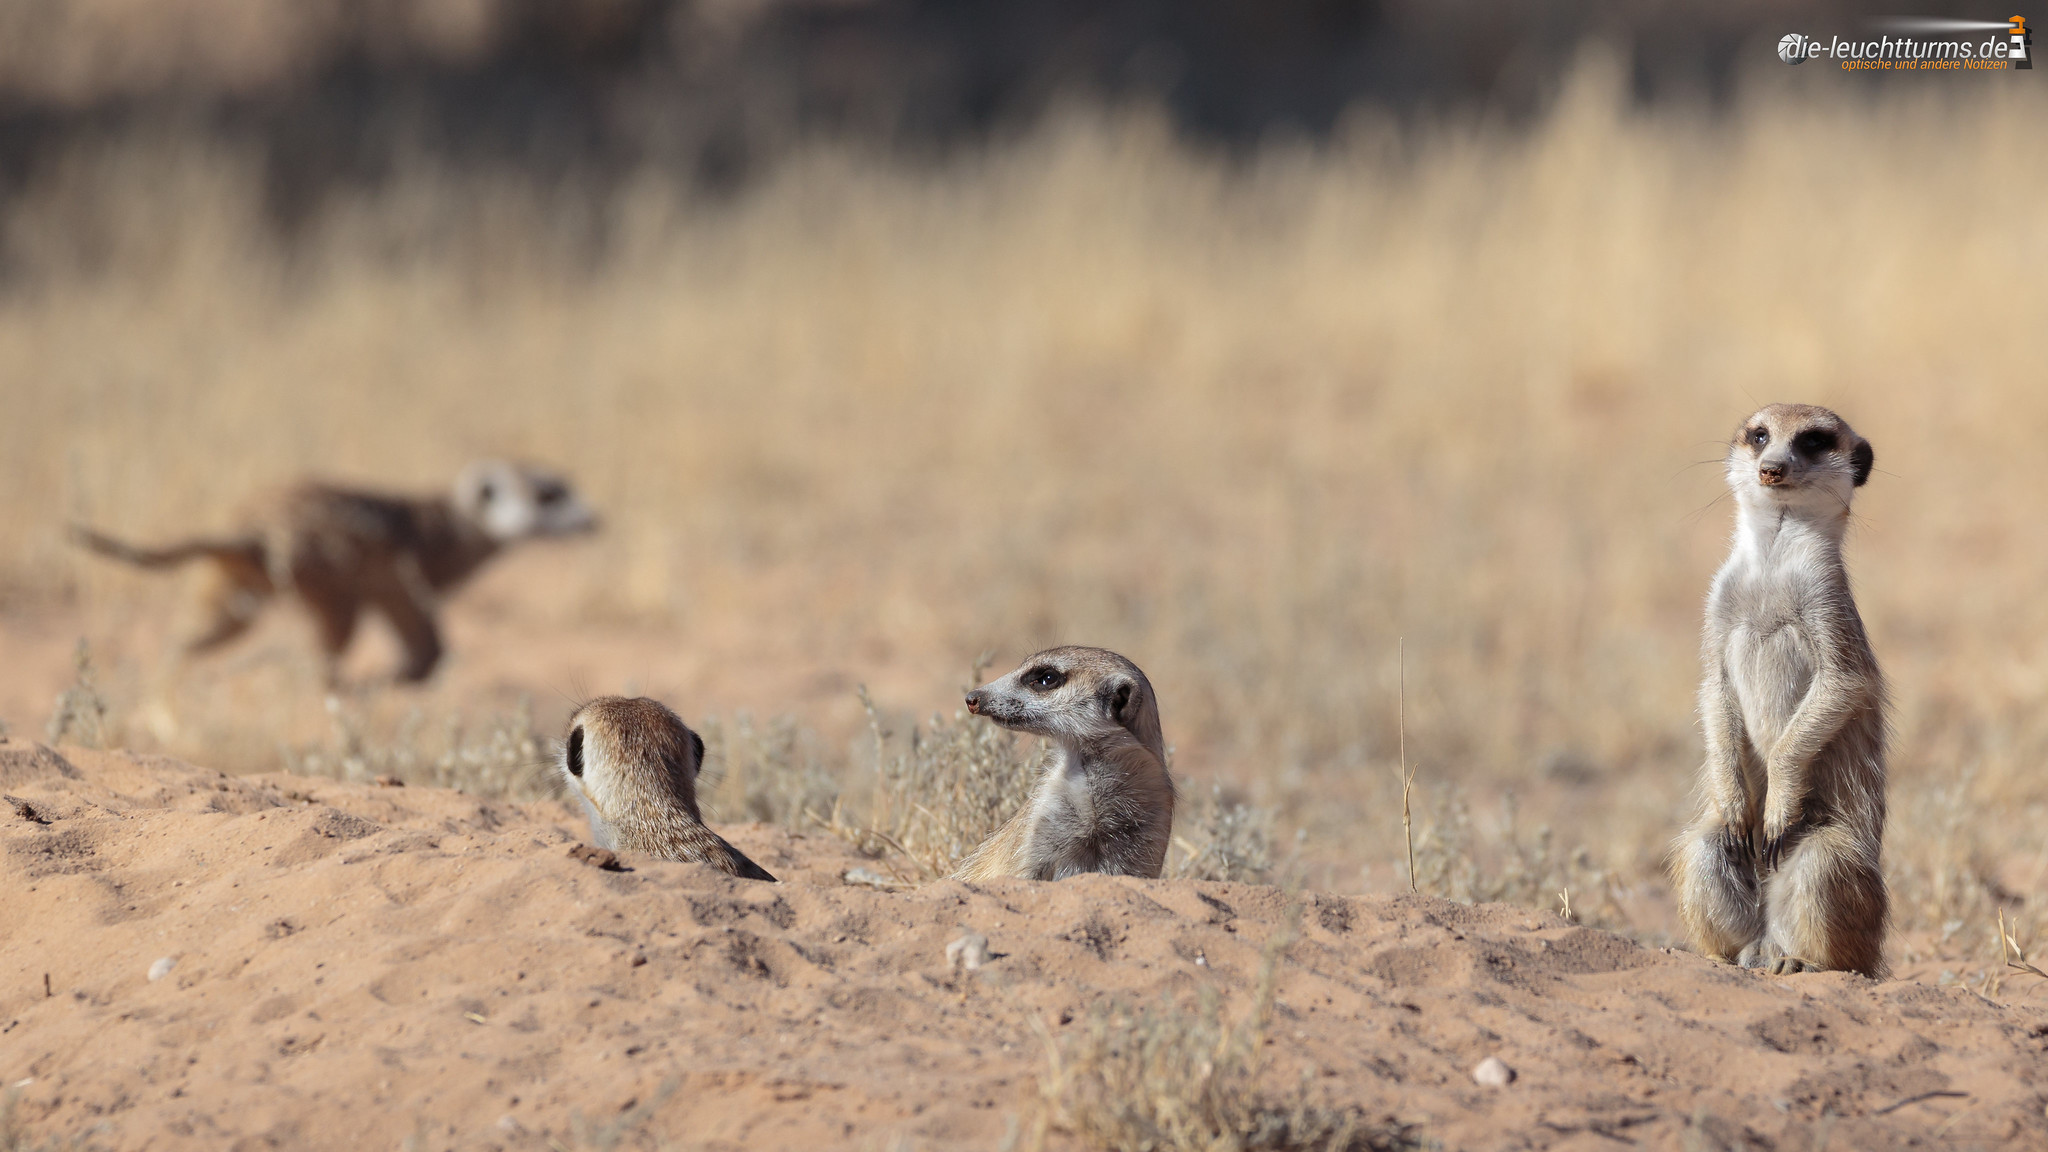 Guardians of the Kgalagadi